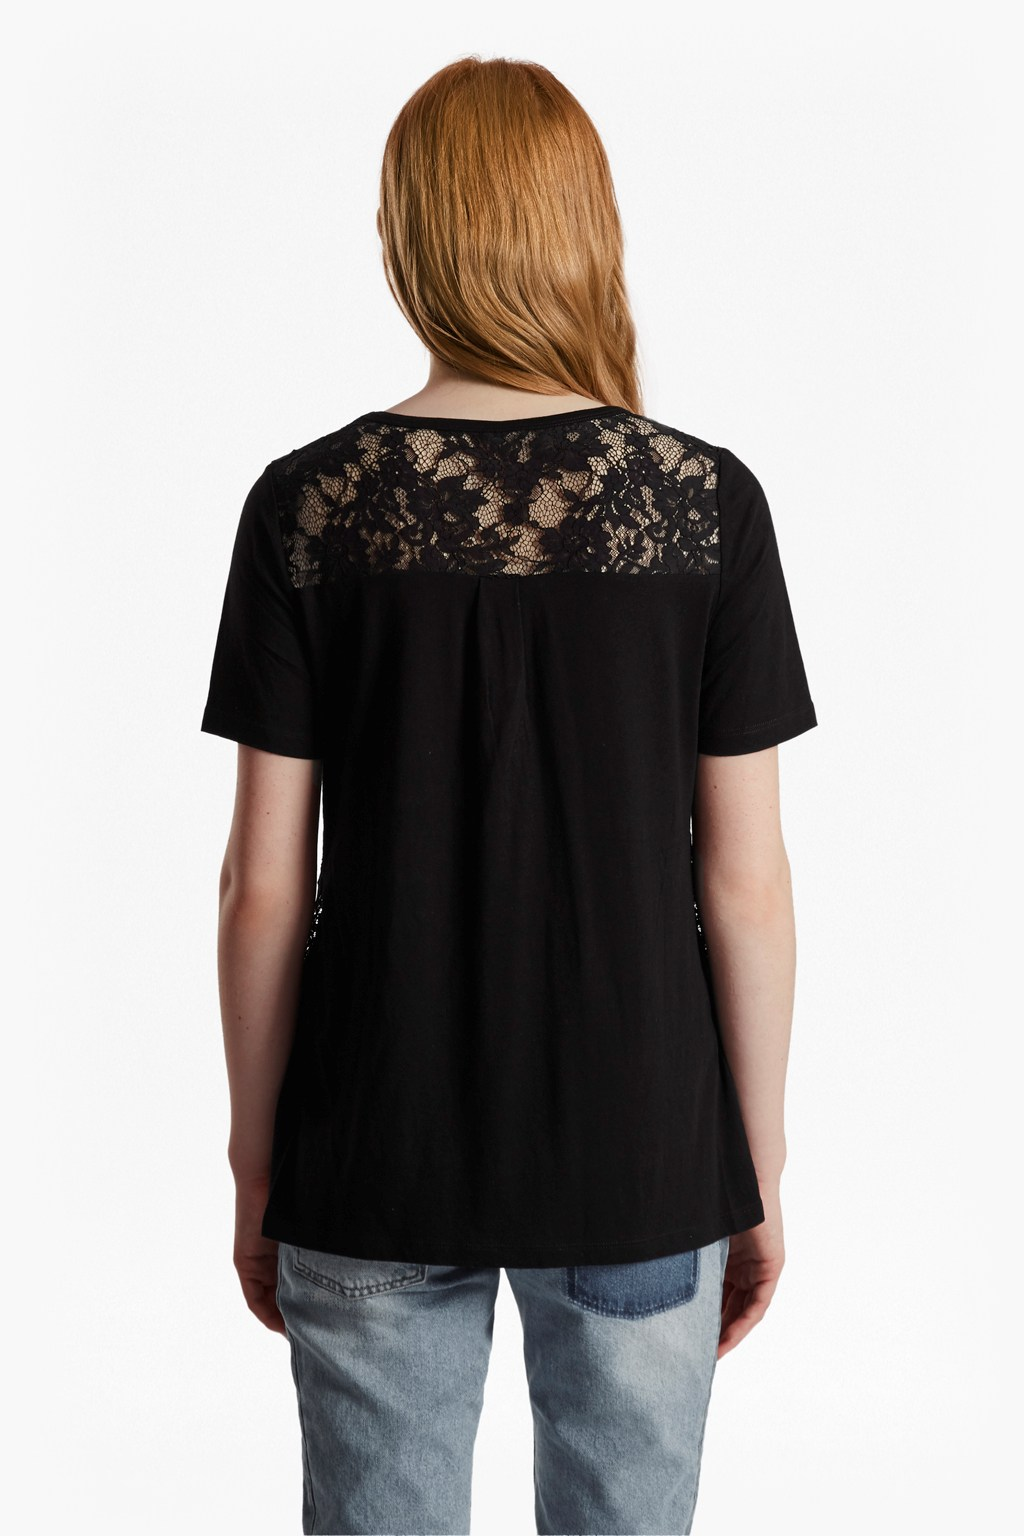 972736f70e08a Womens Black Shirt Ms